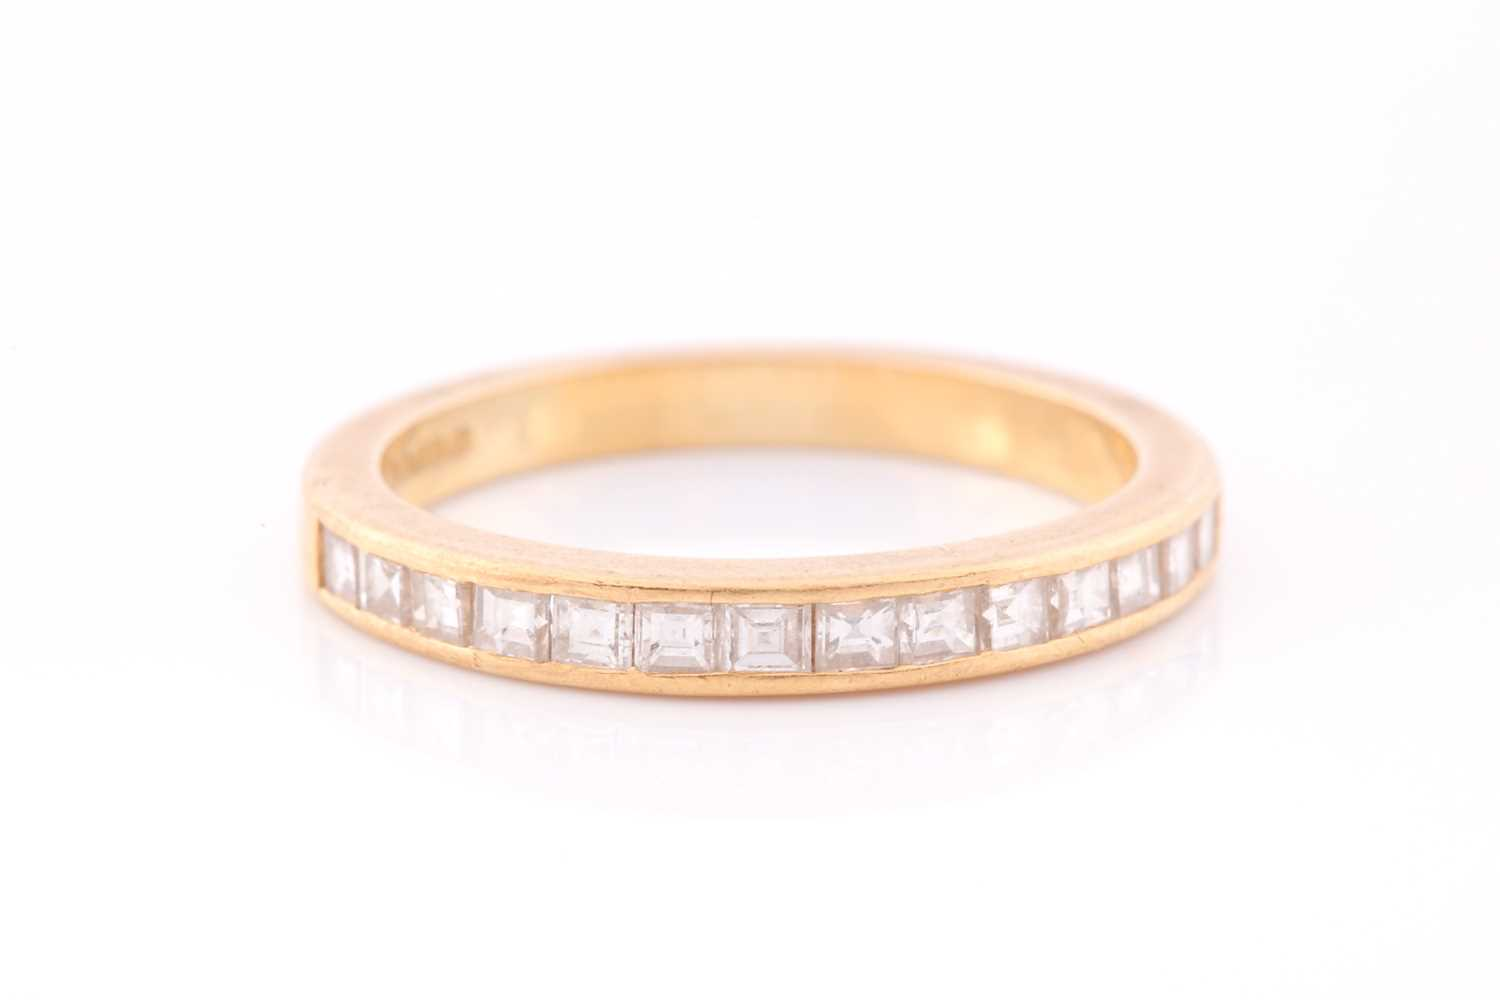 An 18ct yellow gold and diamond half-eternity ring the band calibre set with fourteen princess cut